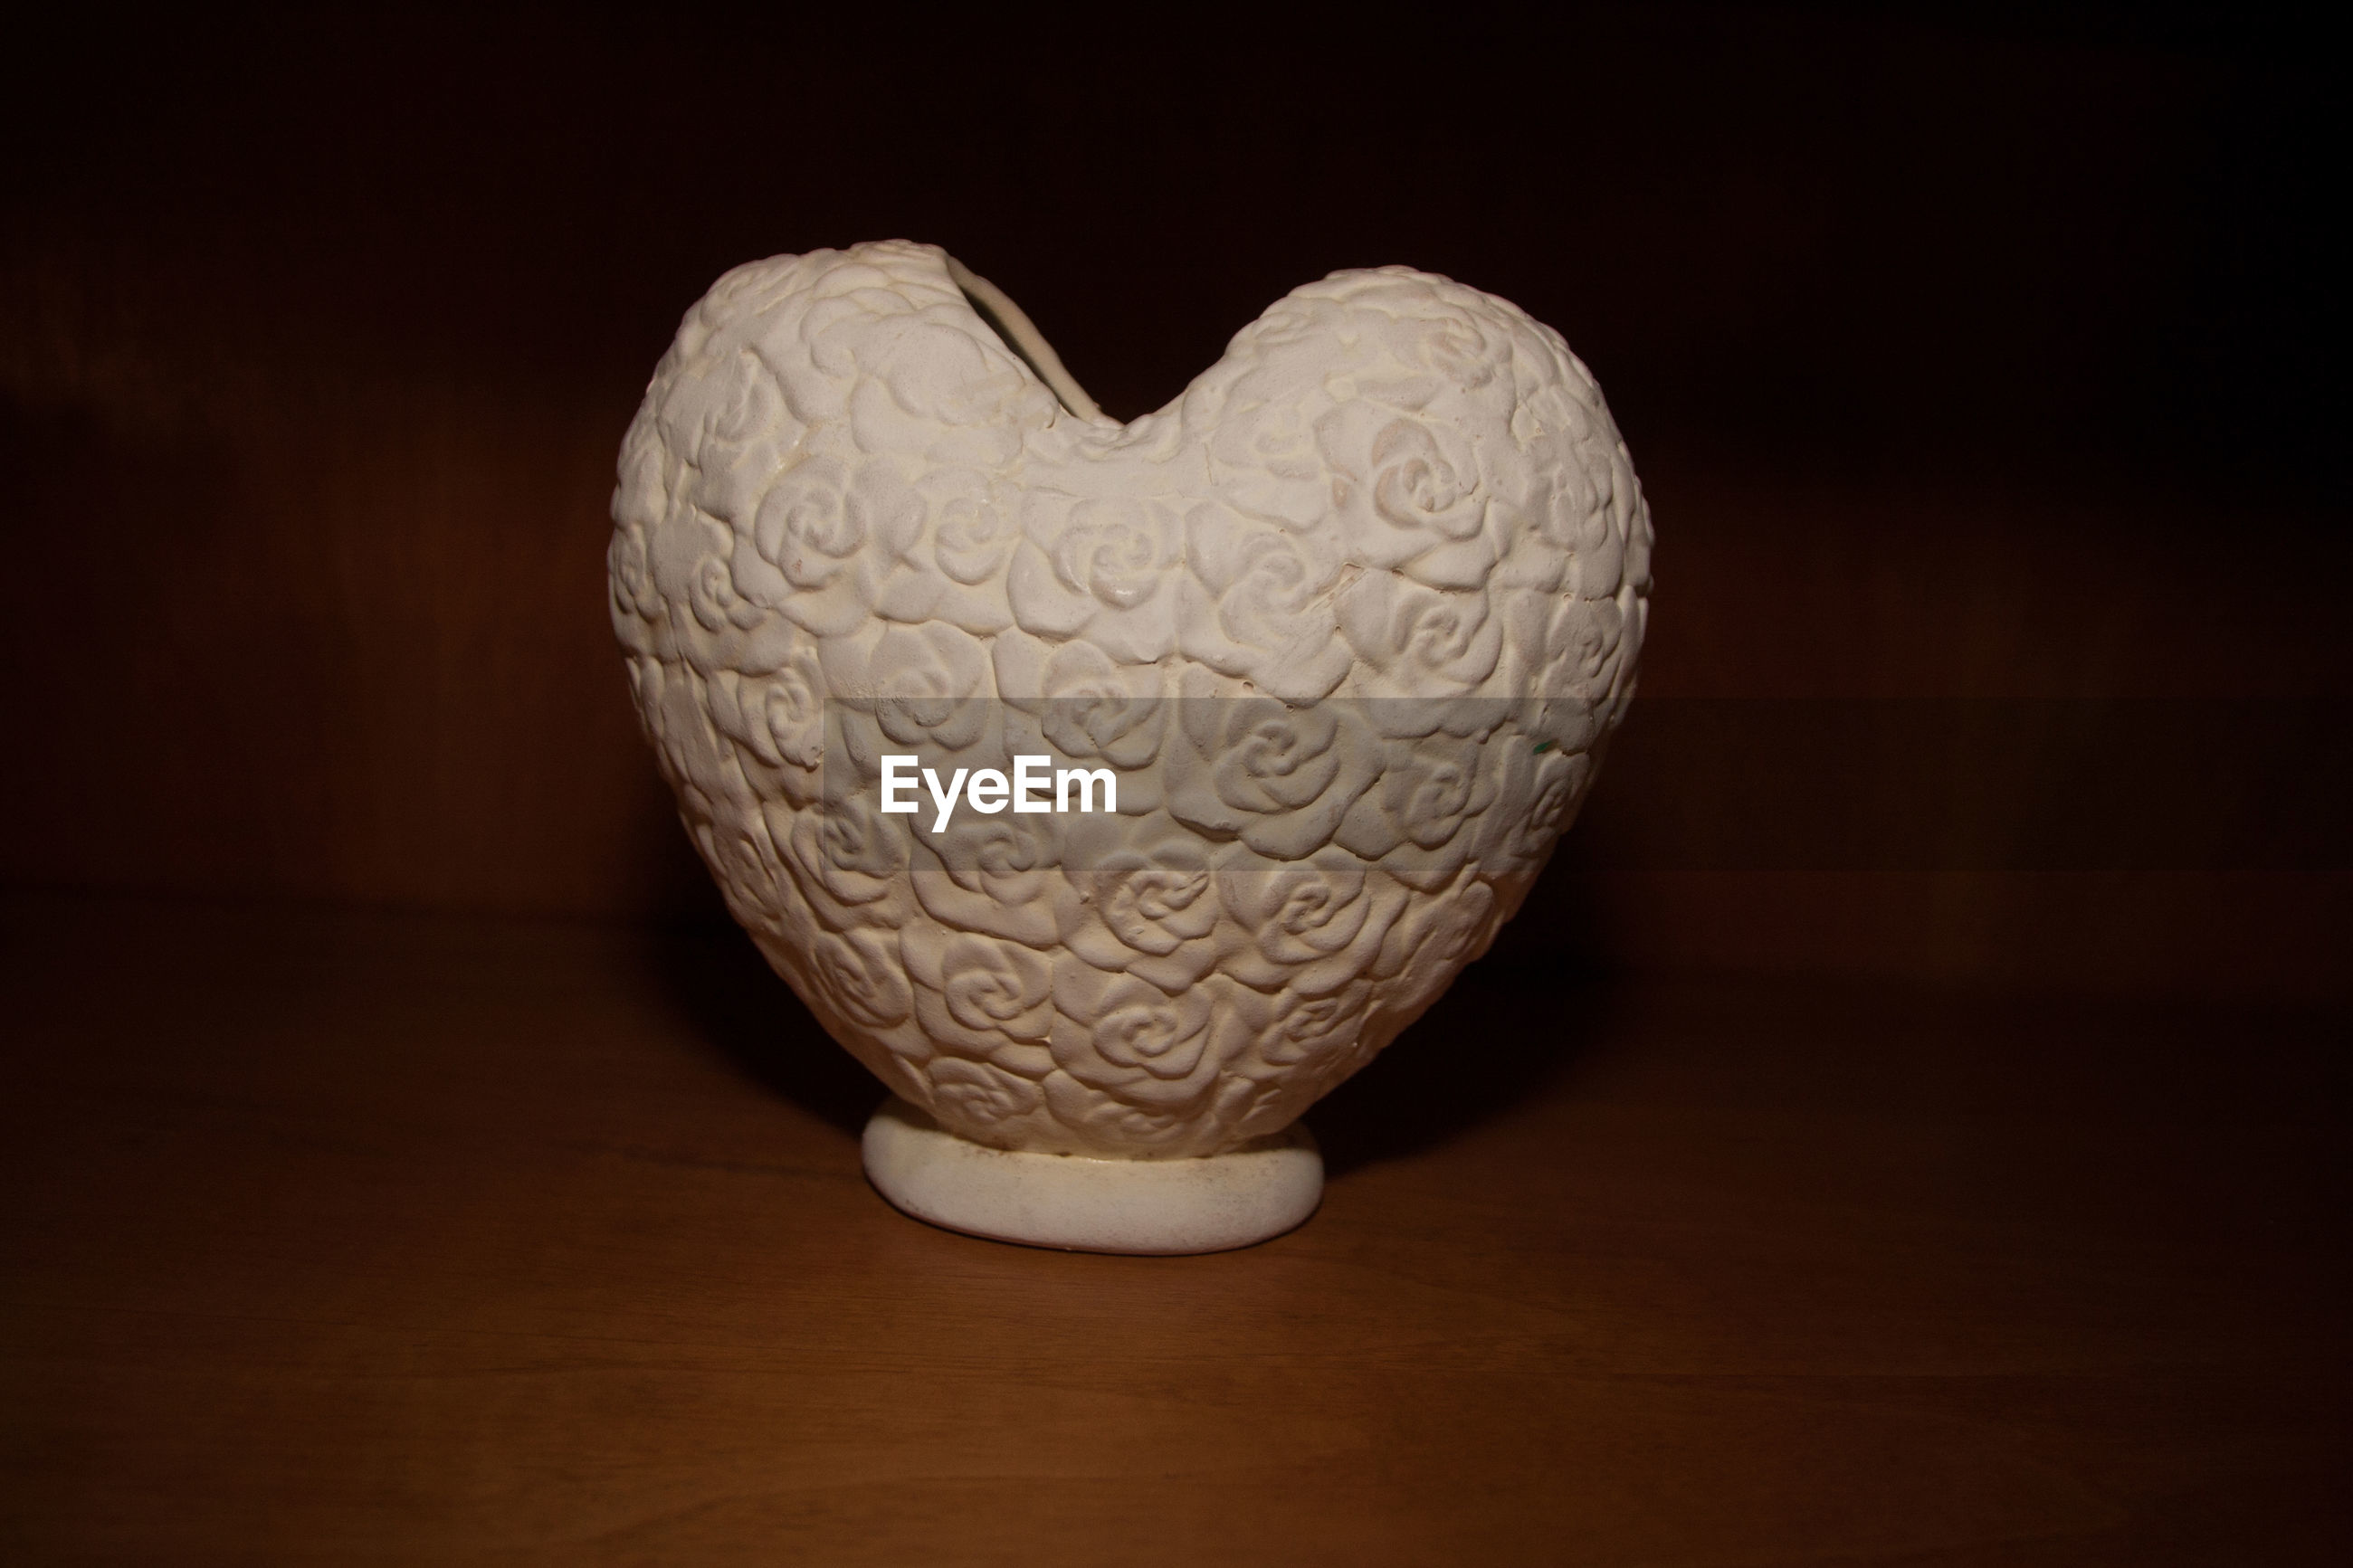 CLOSE-UP OF HEART SHAPE TABLE